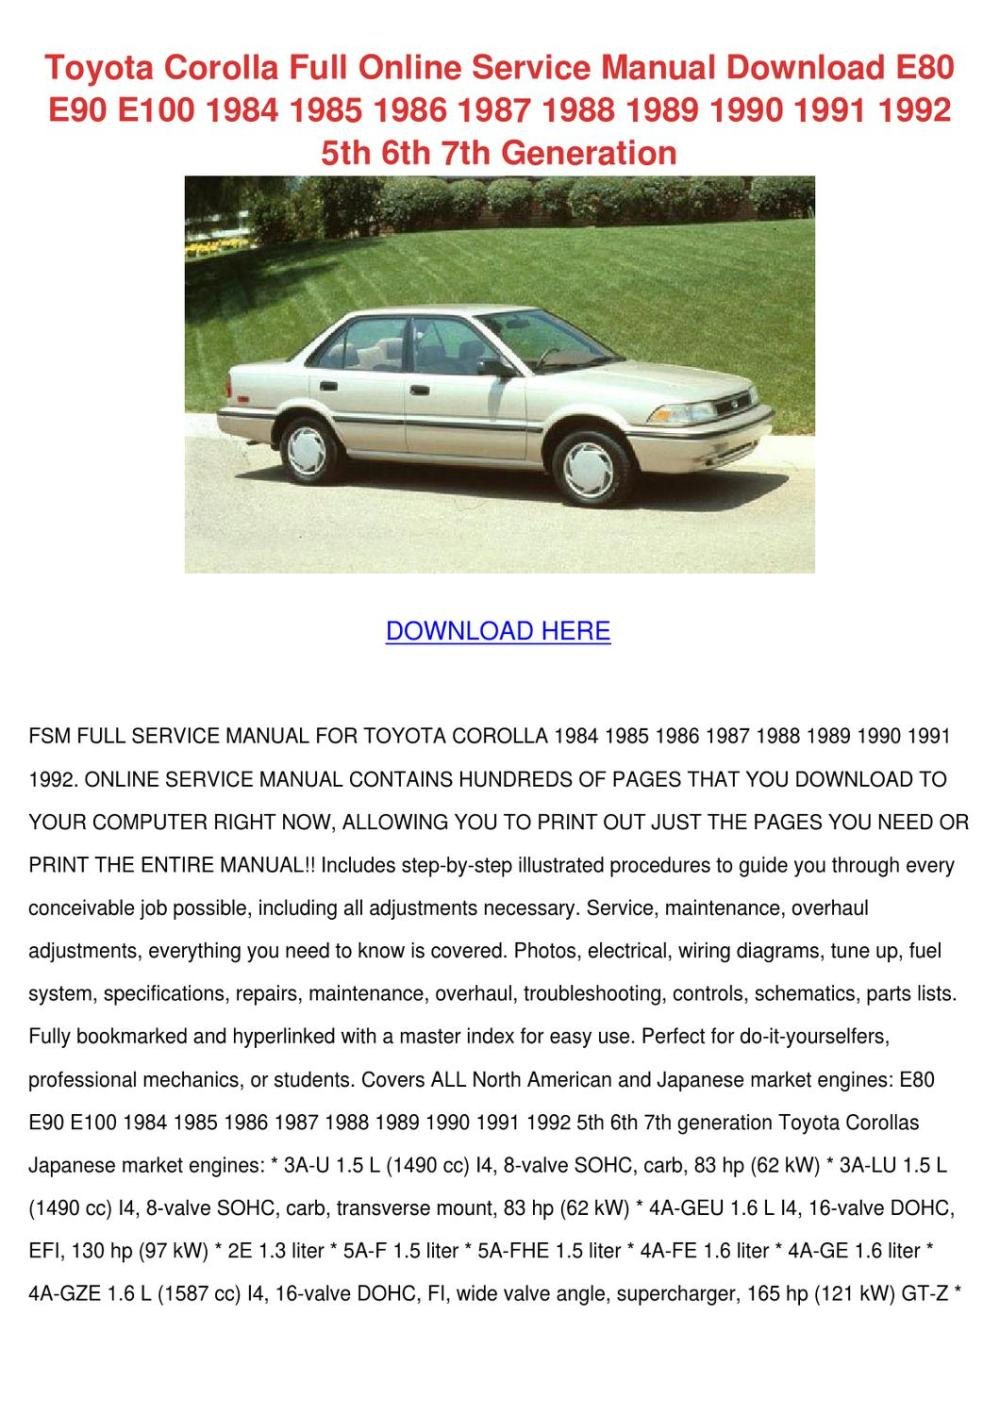 medium resolution of toyota corolla full online service manual dow by willette galbavy issuu